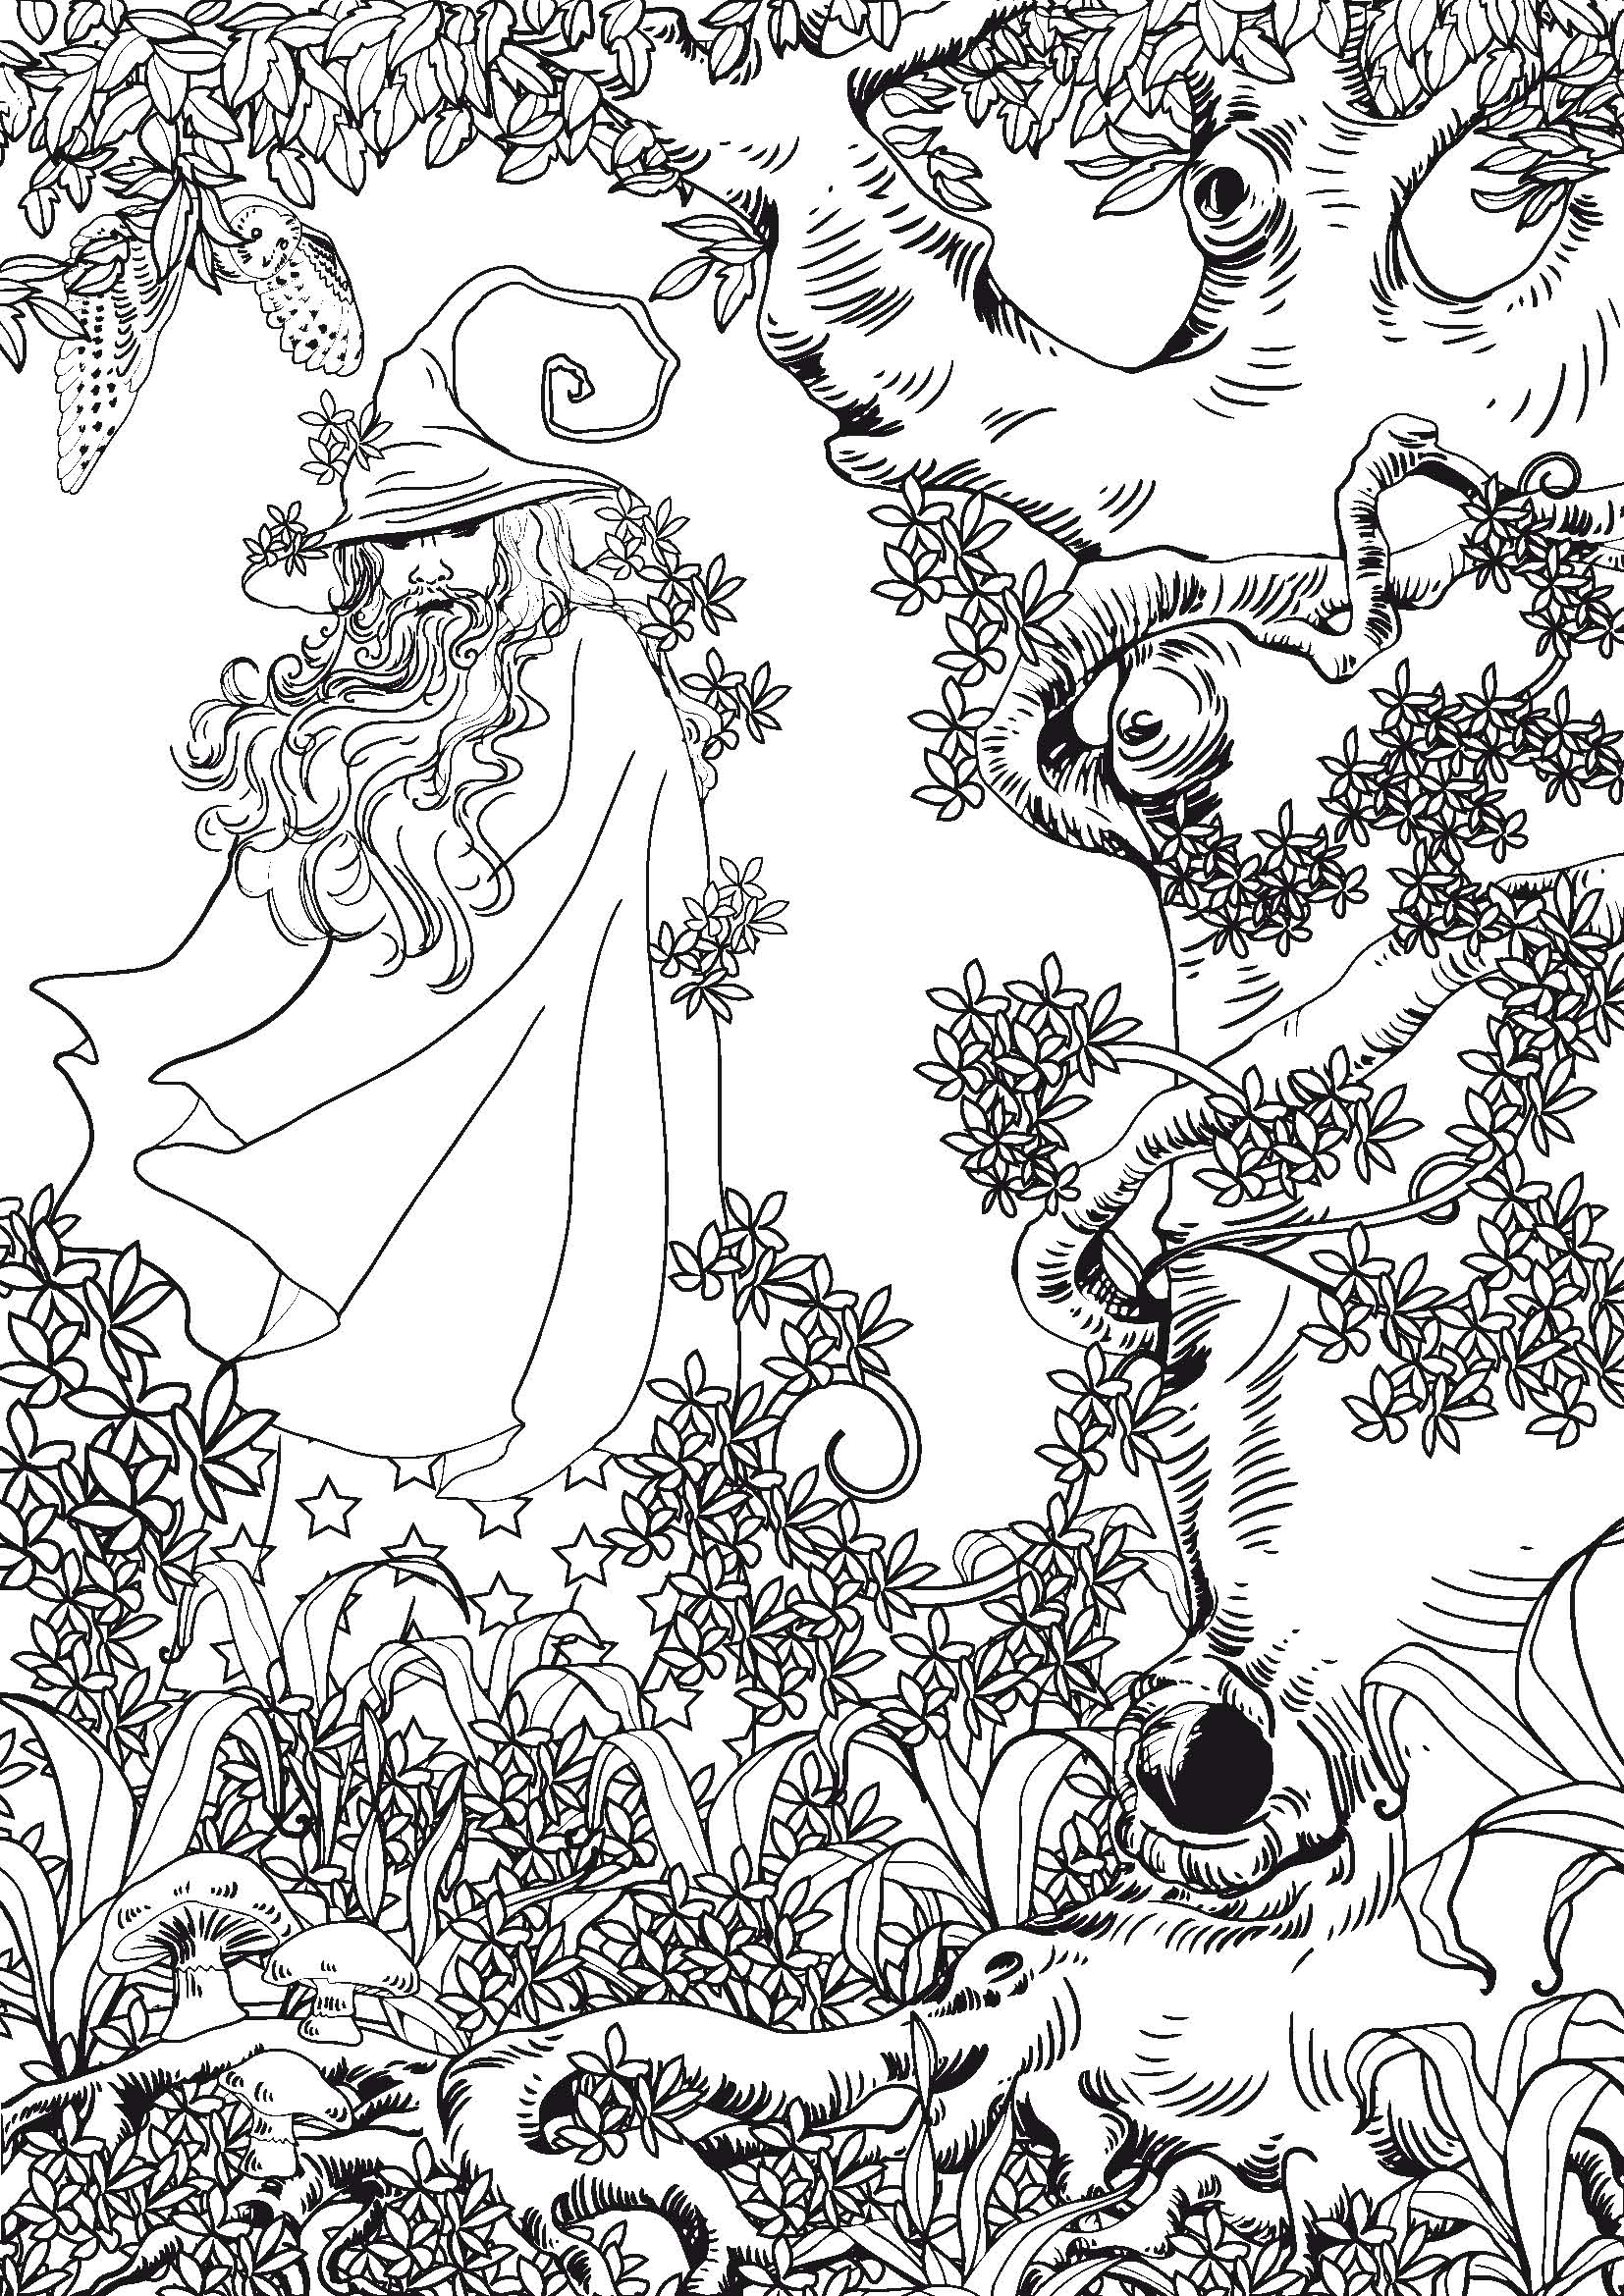 71 dessins de coloriage anti stress imprimer sur - Dessins anti stress ...